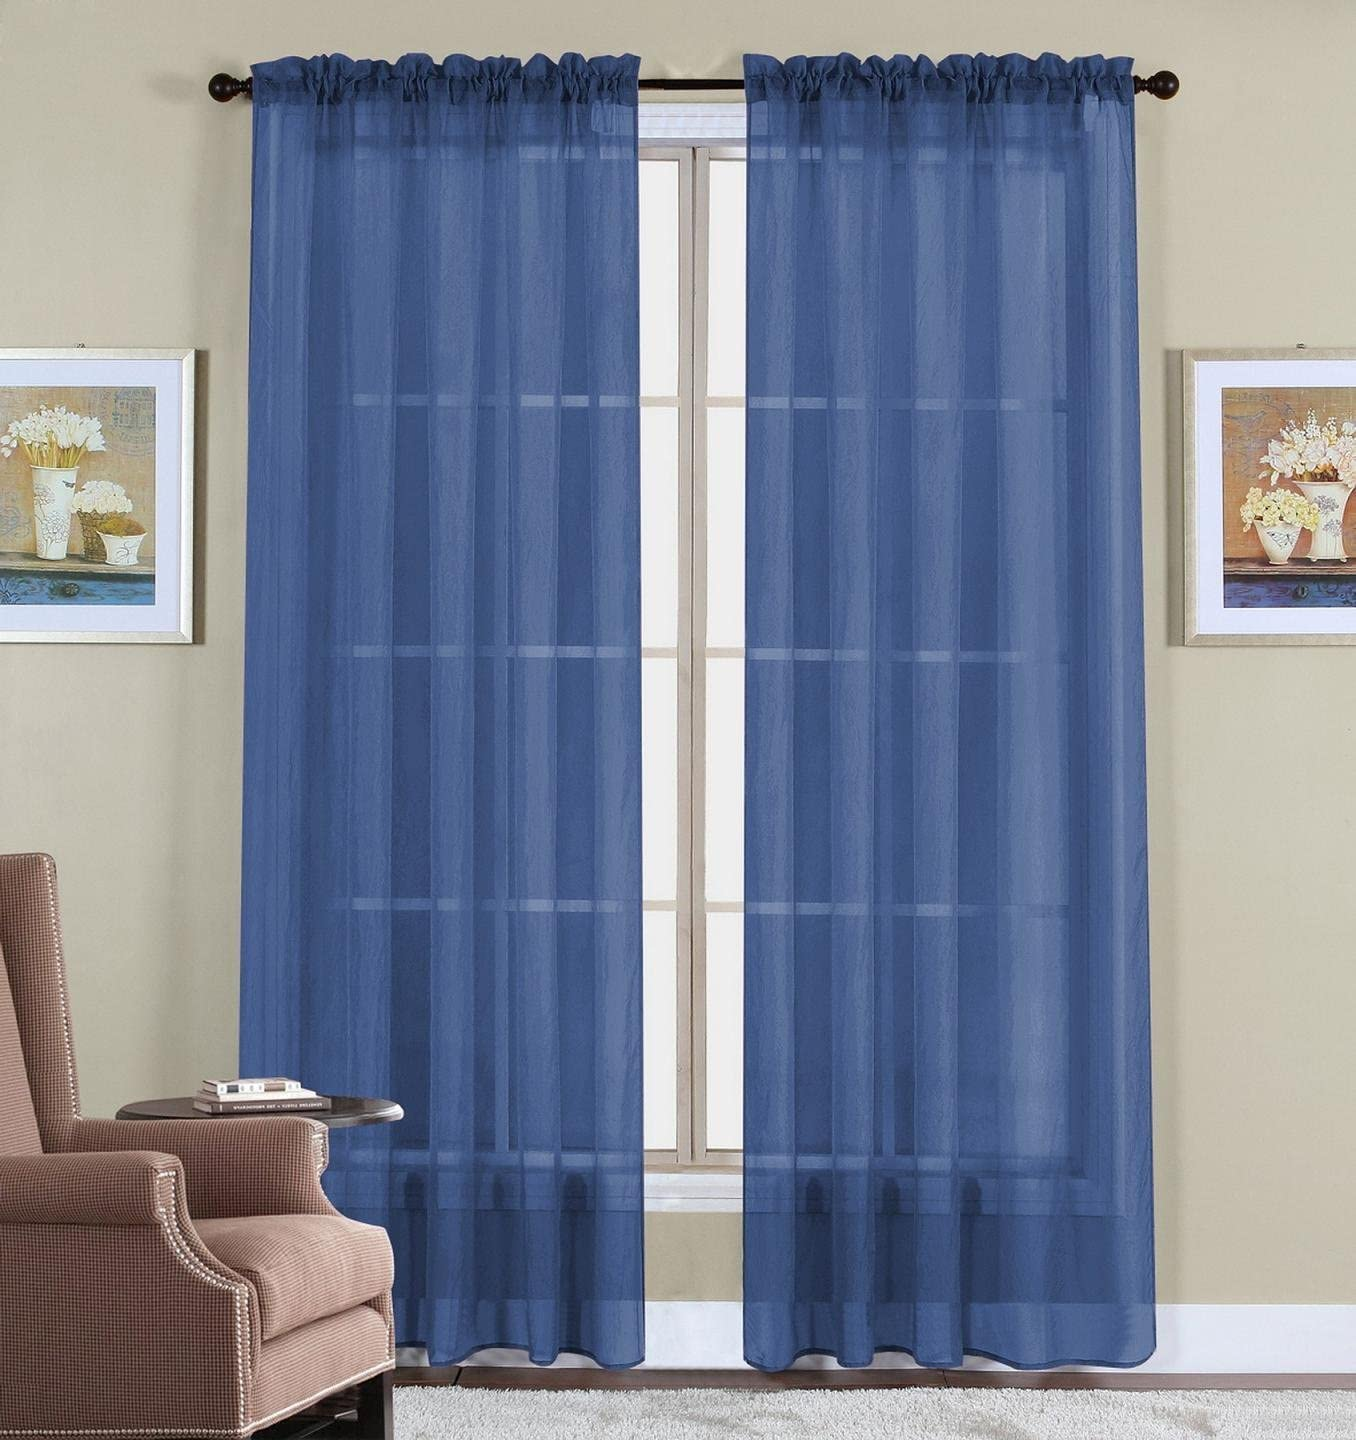 "WPM 2 Piece Beautiful Sheer Window Elegance Curtains/Drape/Panels/Treatment 60"" w X 84"" l (Navy Blue)"